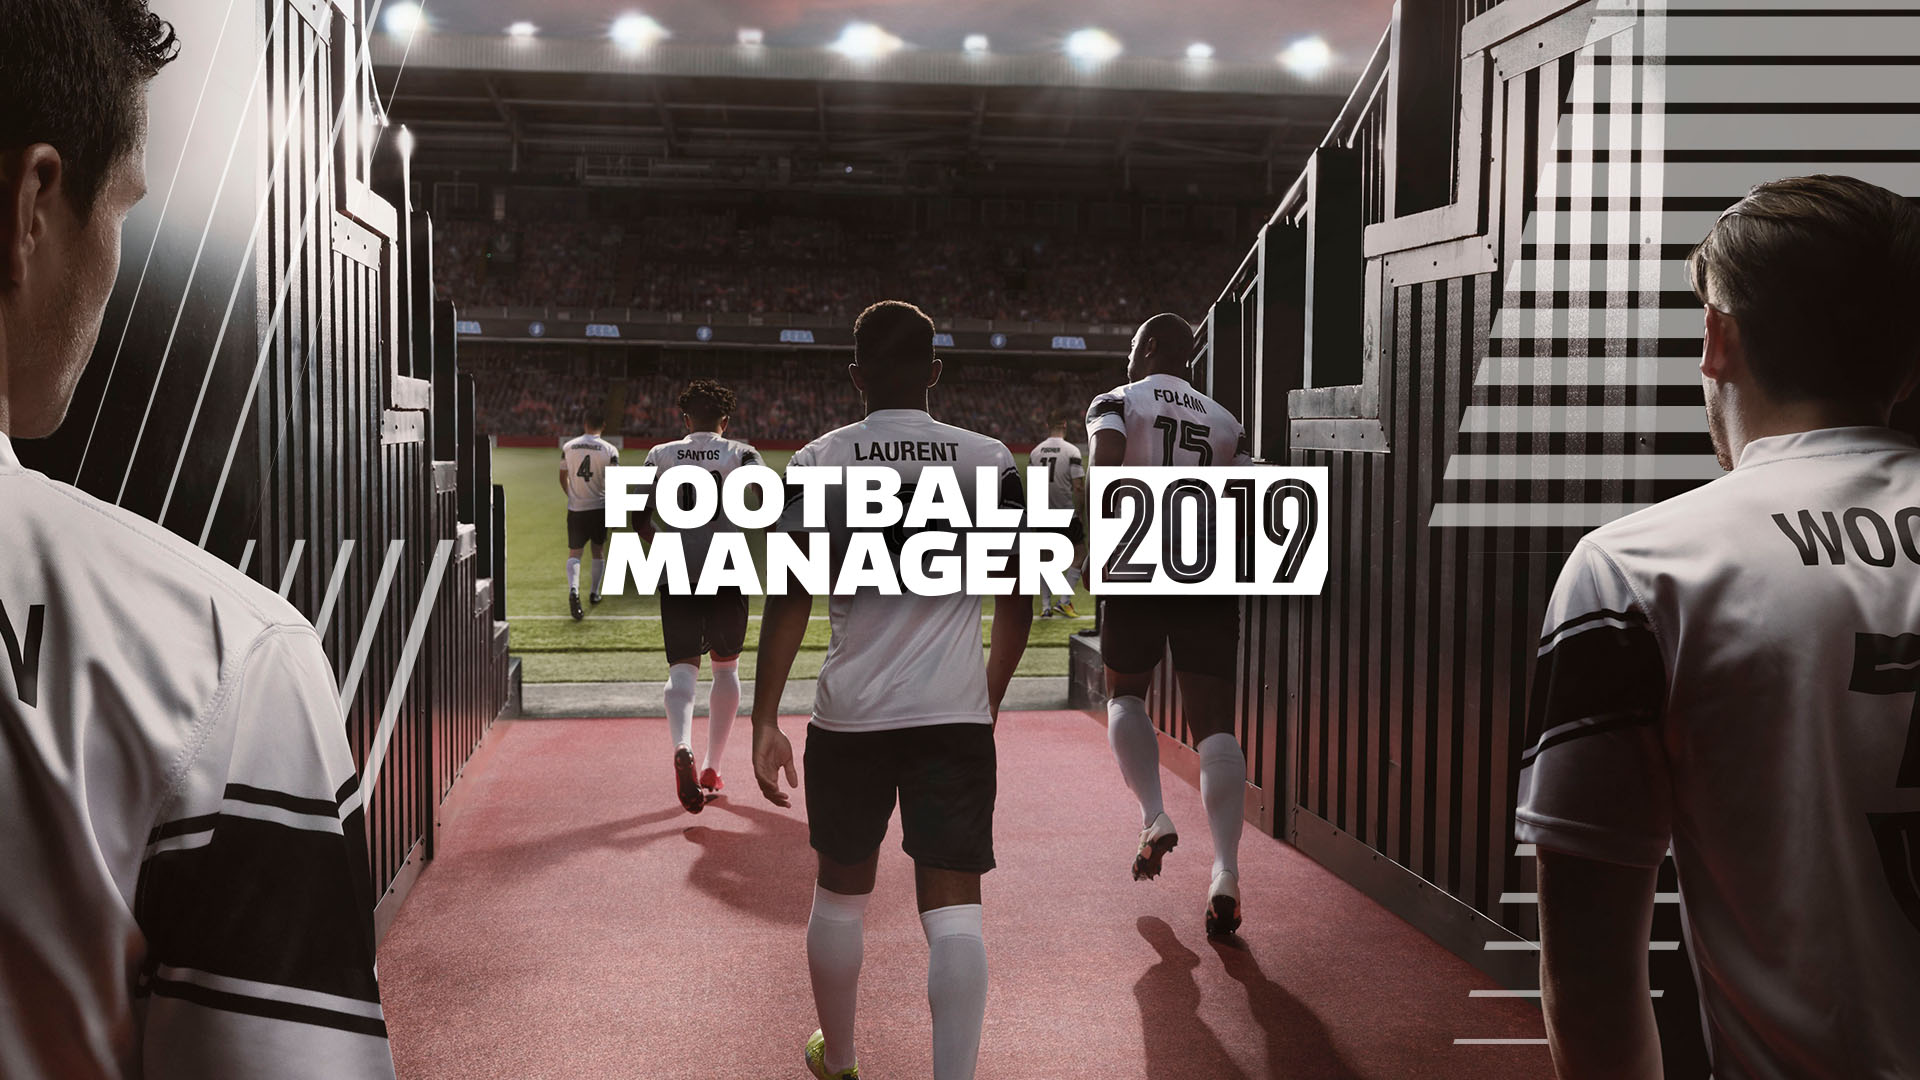 Football Manager 2019 Release Date Set Includes German